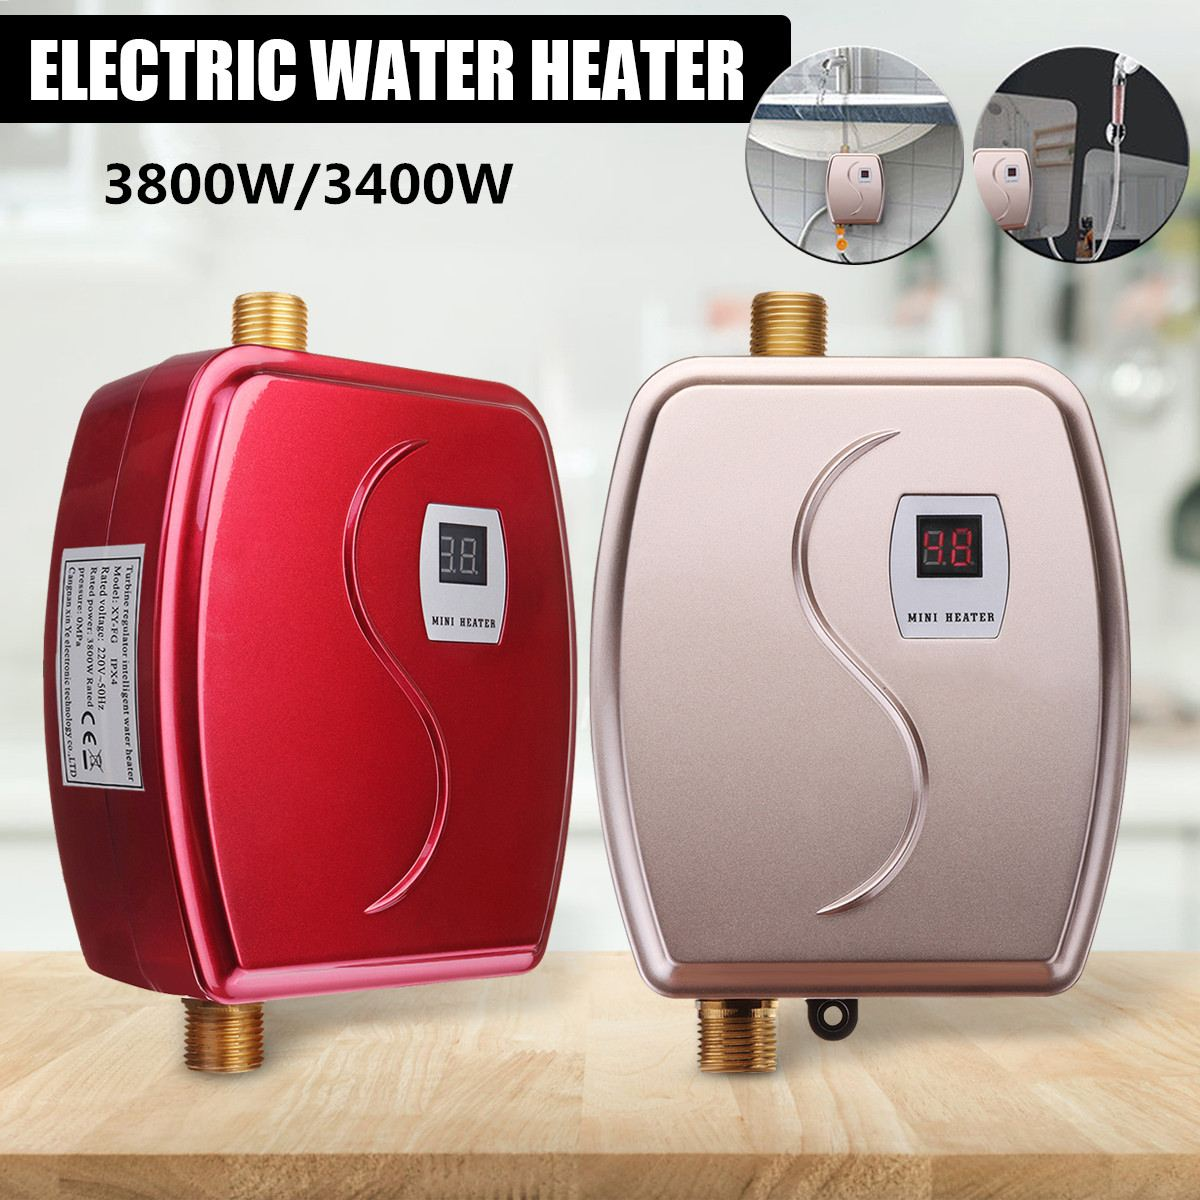 3800W/3400W Electric Water Heater Instant Tankless Water Heater 110V/220V 3.8KW Temperature display Heating Shower Universal image